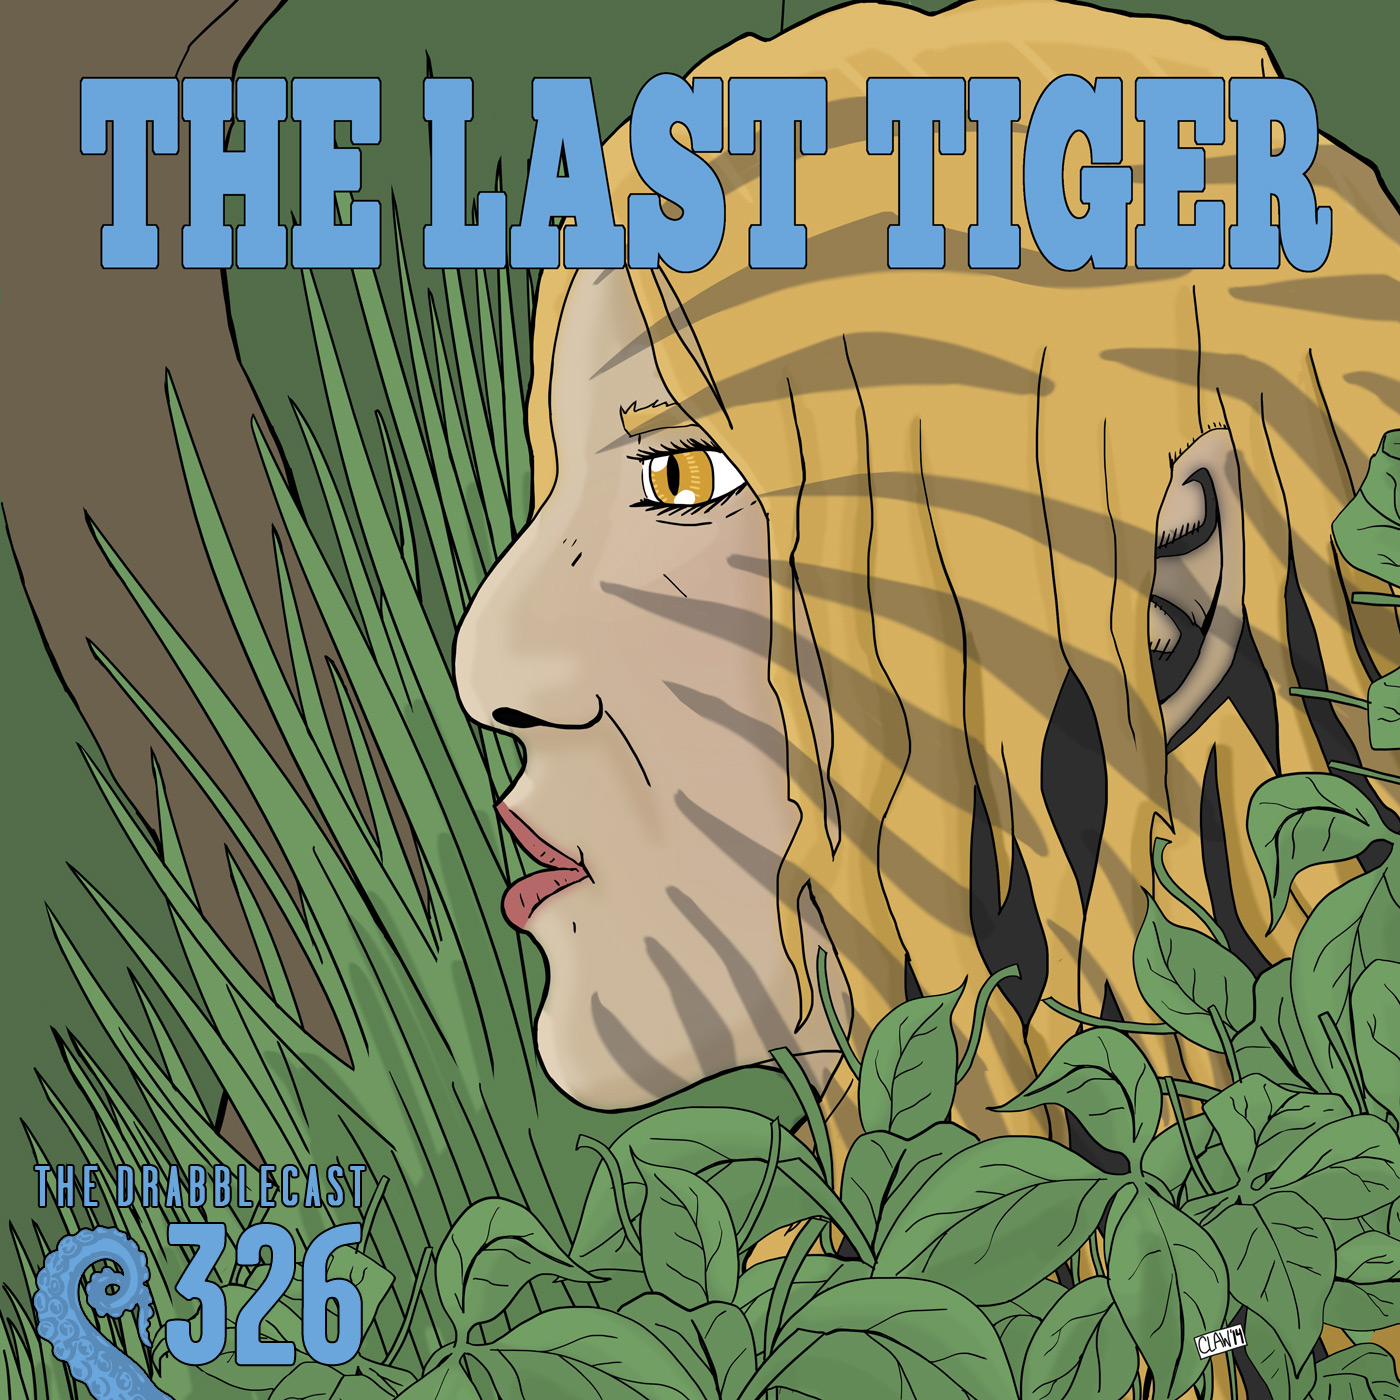 Cover for Drabblecast 326, The Last Tiger, by Alex Claw